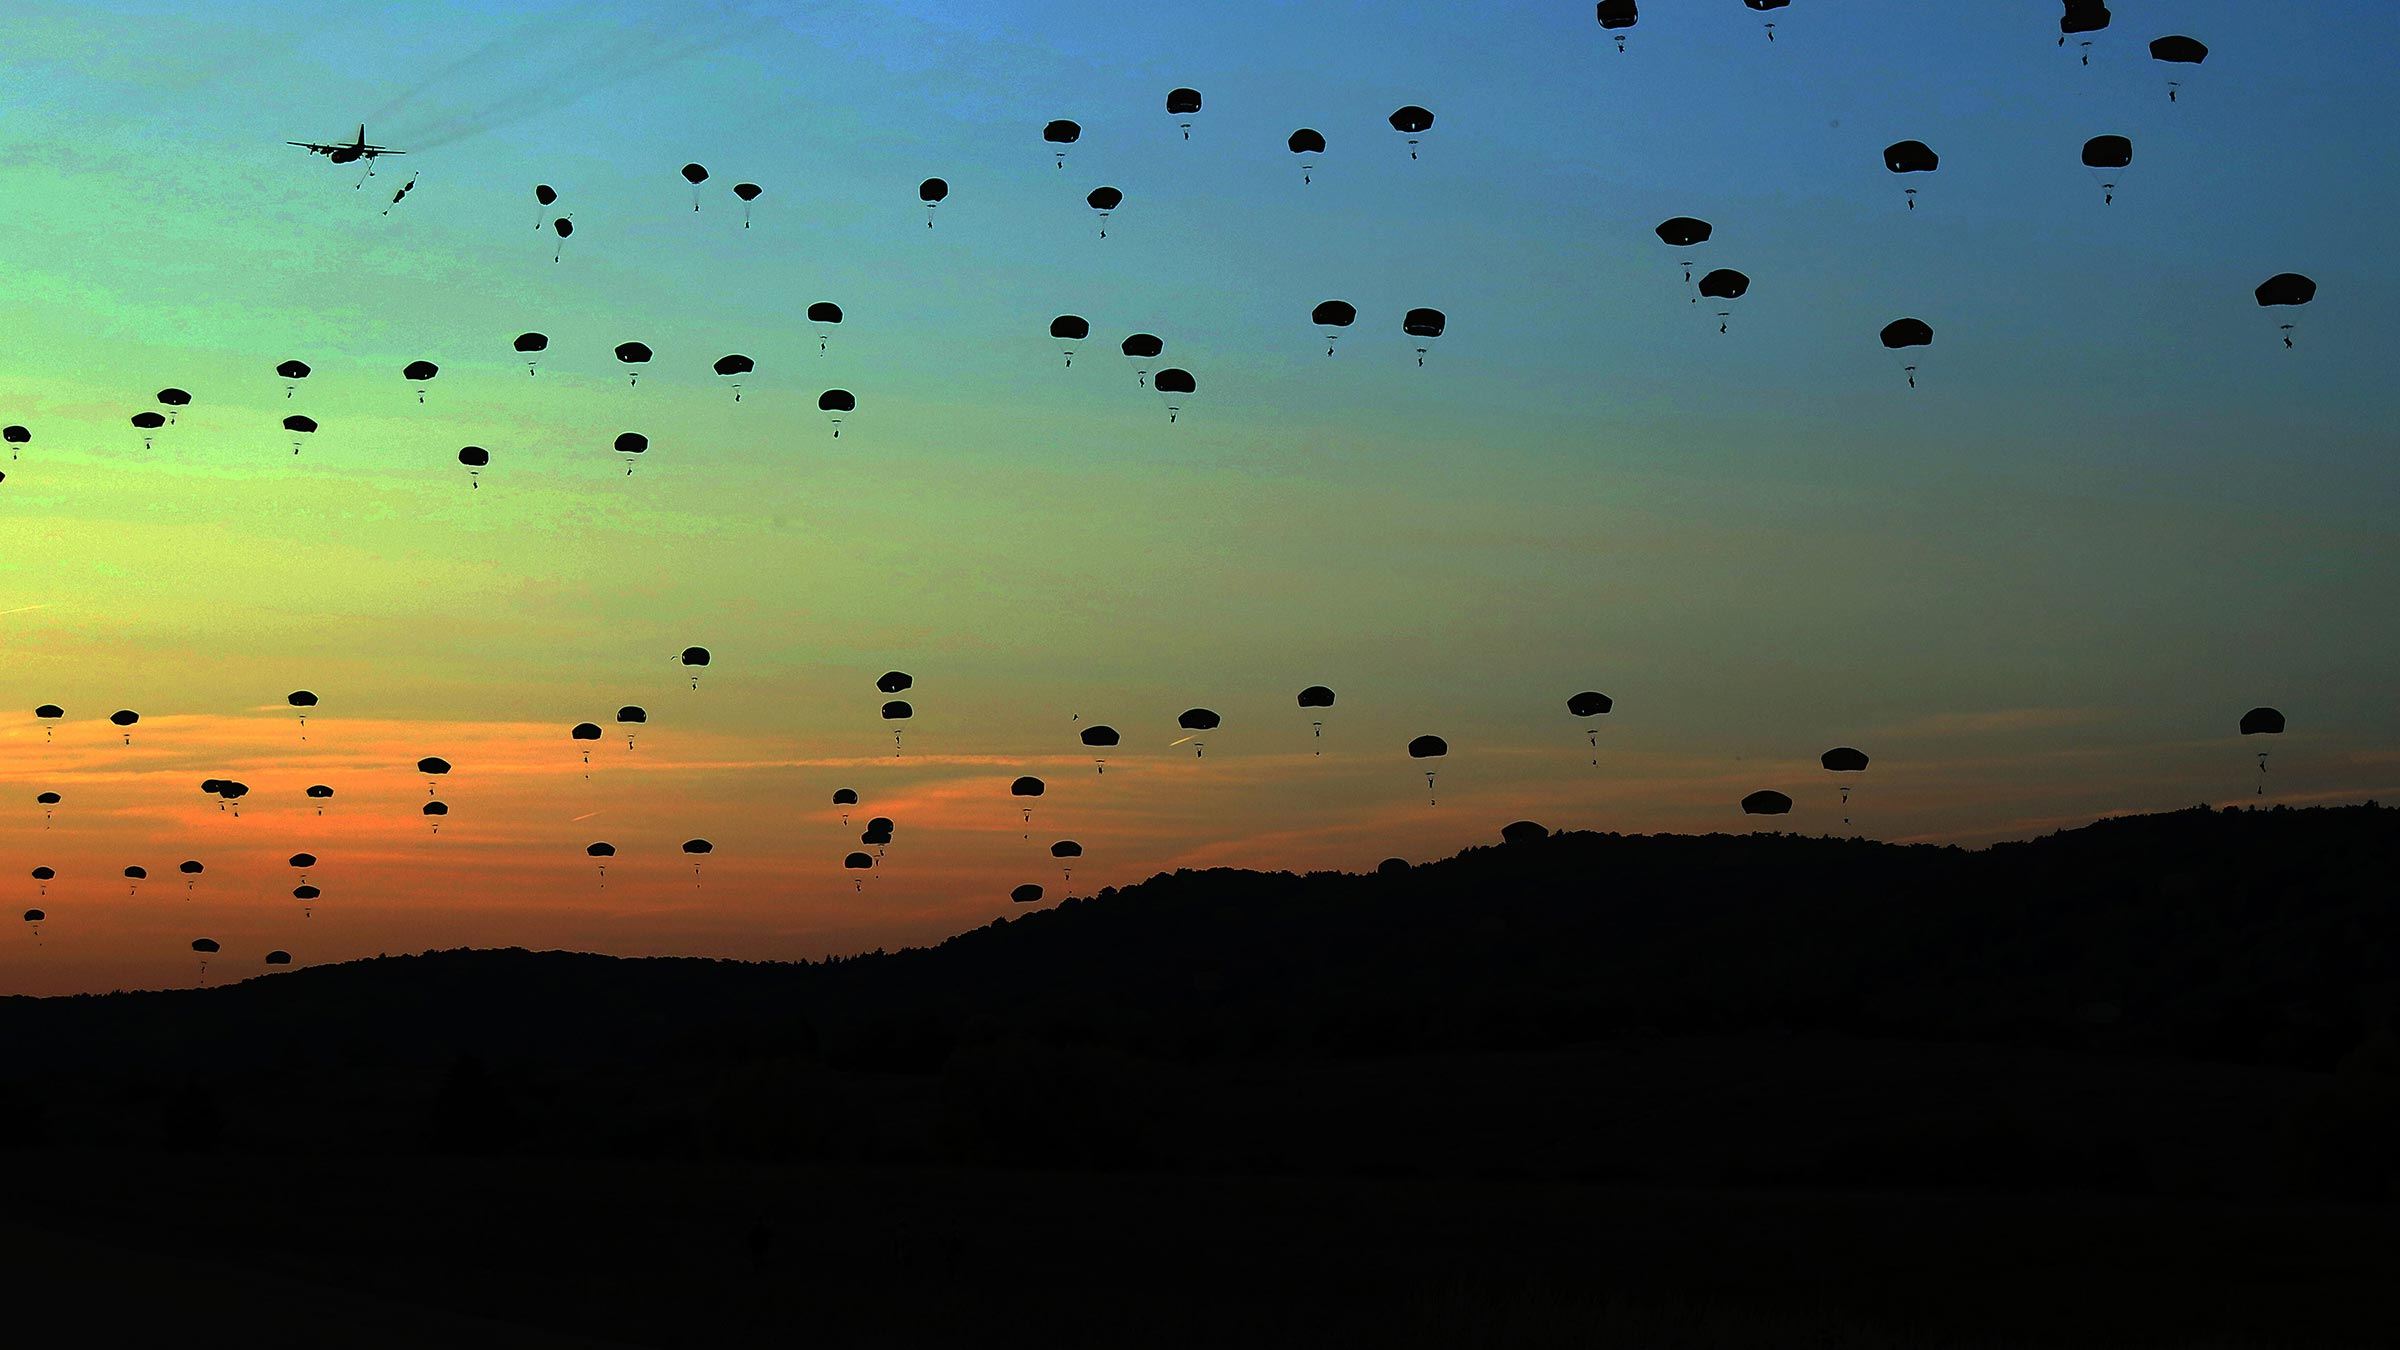 paratroopers cover skyline